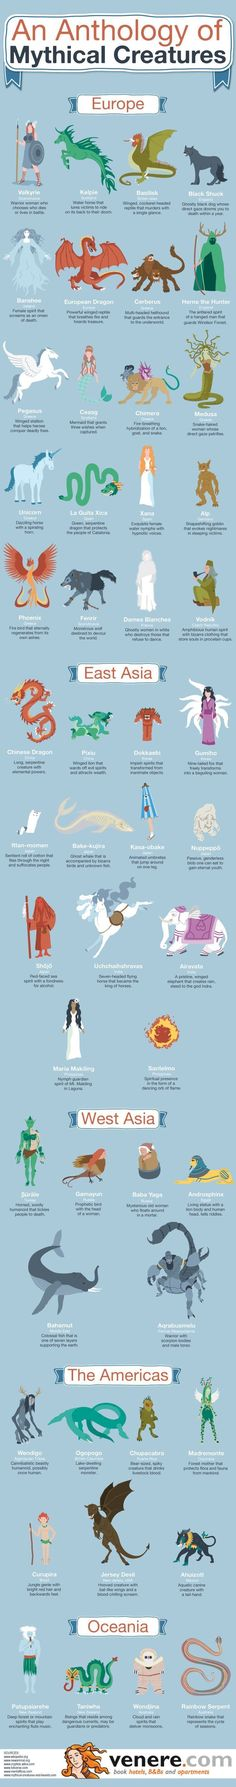 Every civilization has its own myths and legends. Let's find out the 50 most important - and weird - legendary creatures with this Infographic! THIS IS AMAZING.